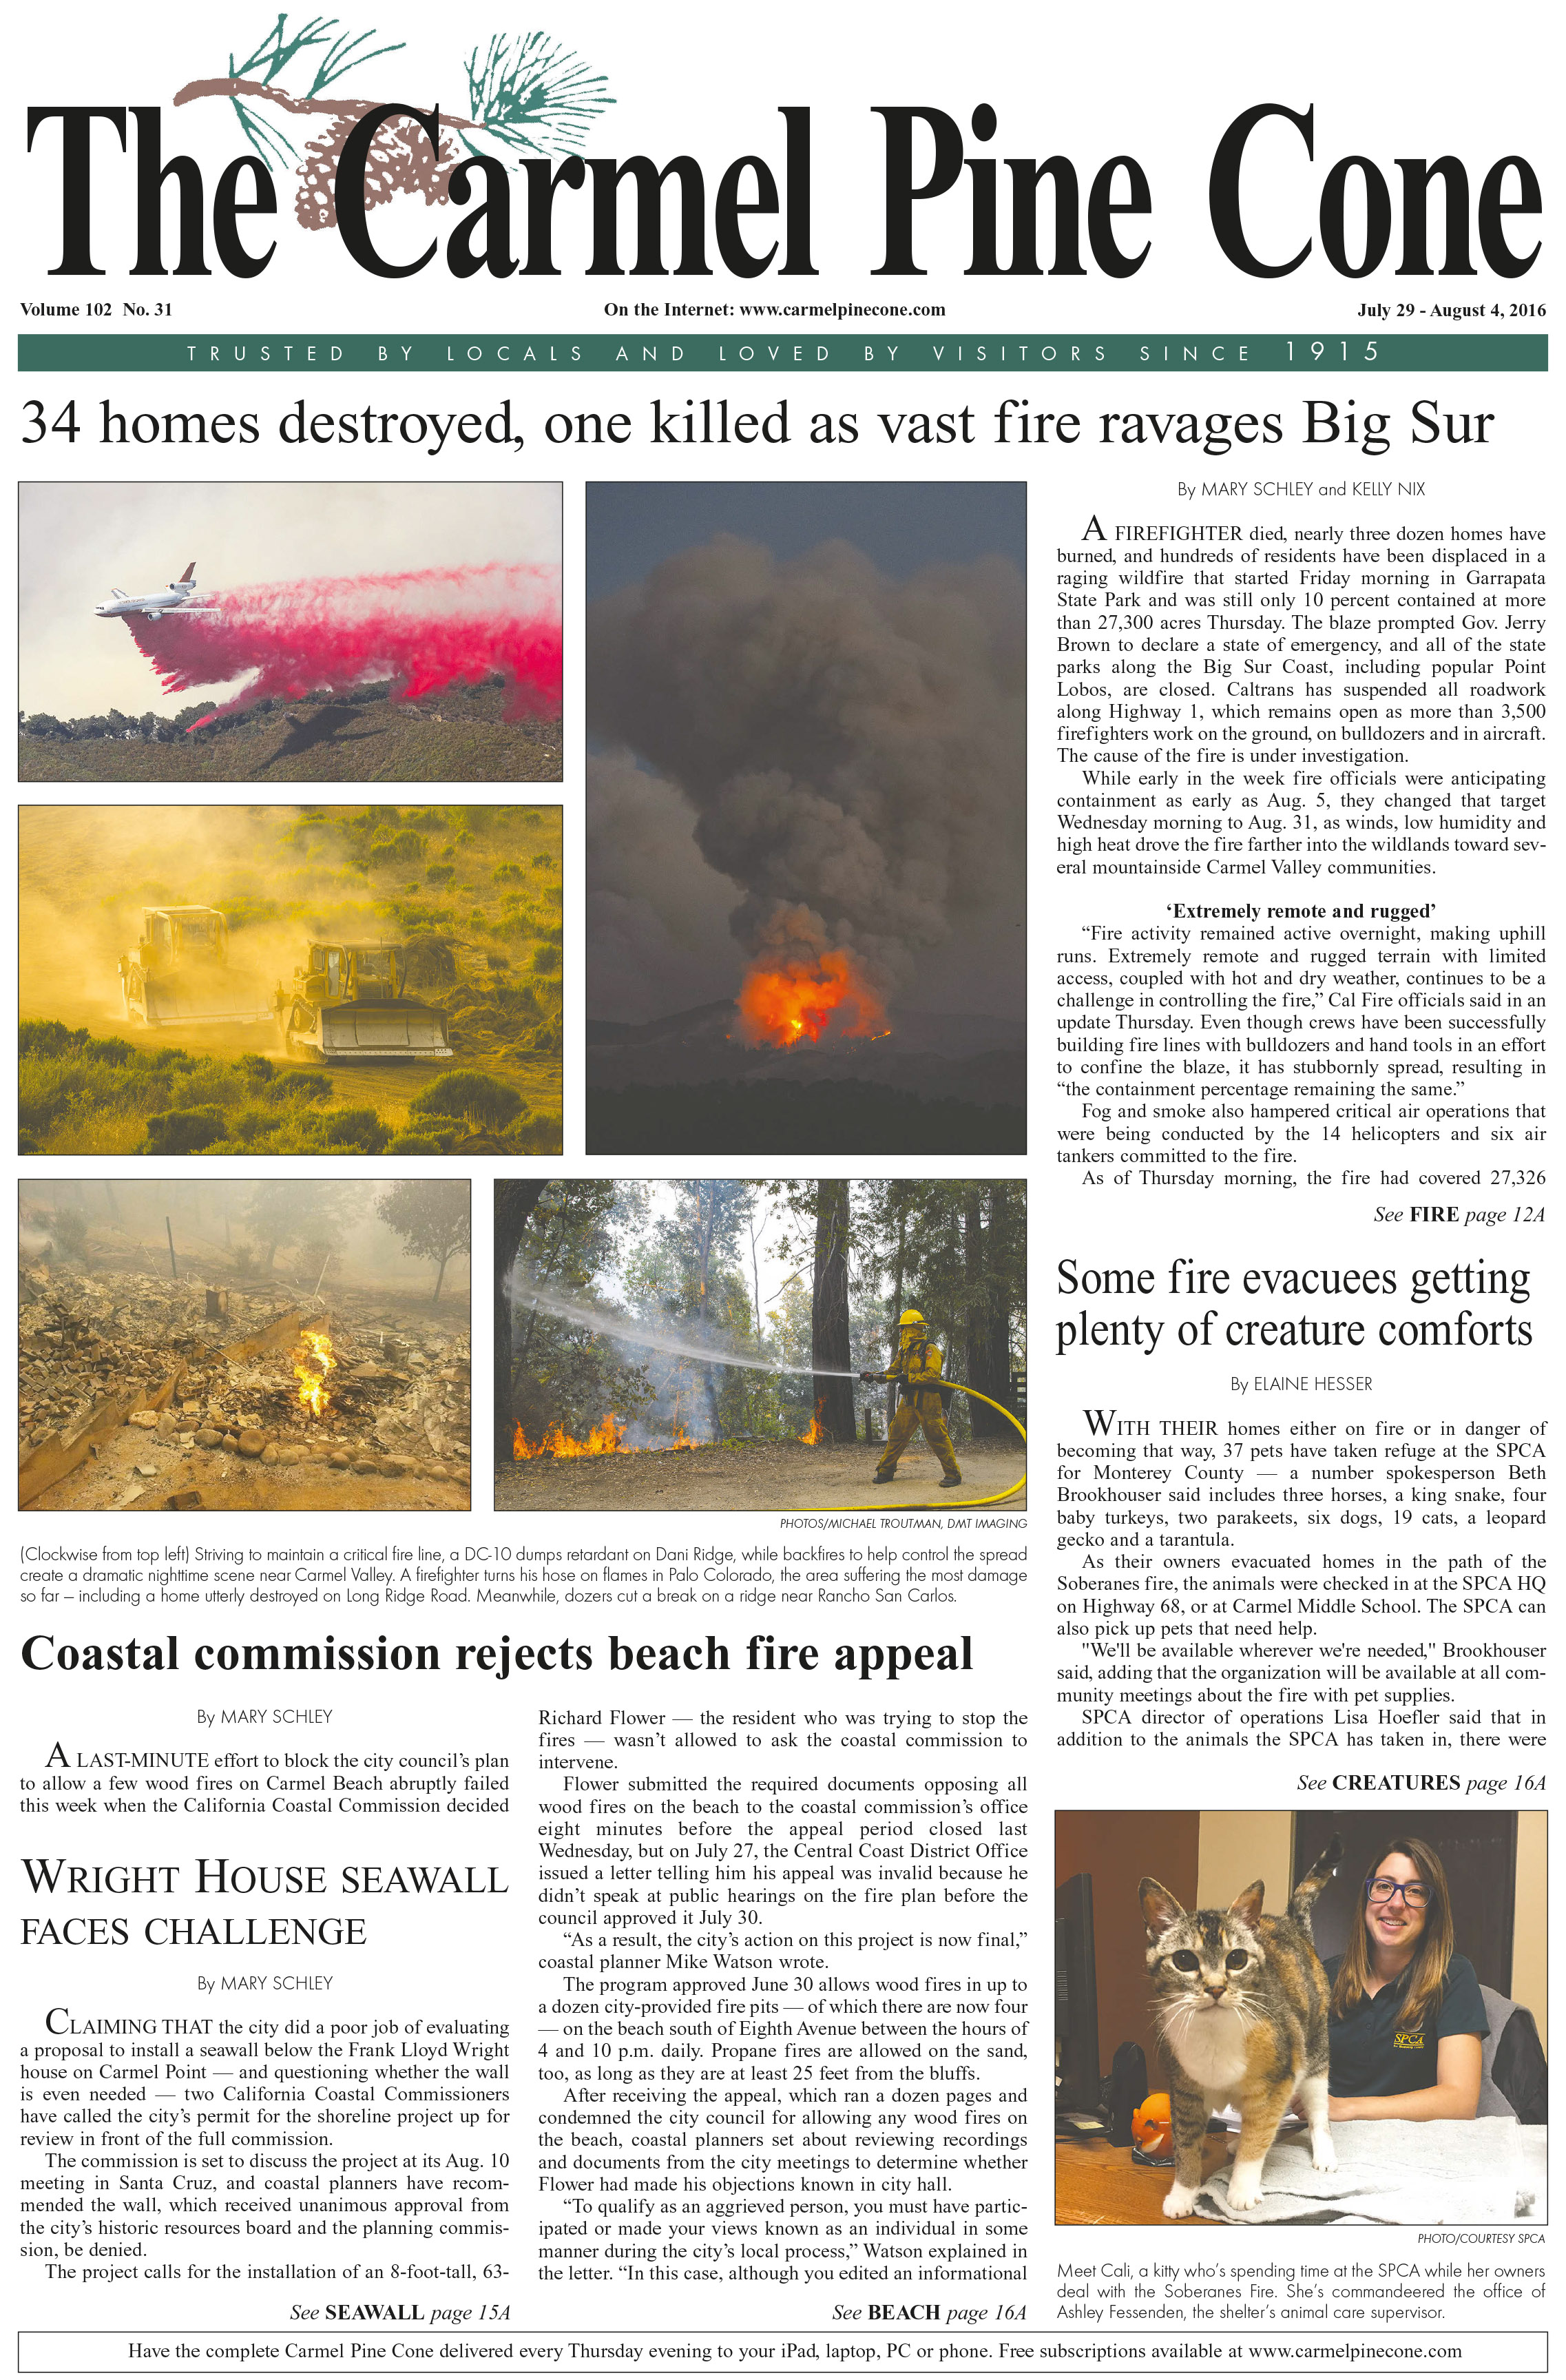 The July 29, 2016, front page of The Carmel Pine                 Cone